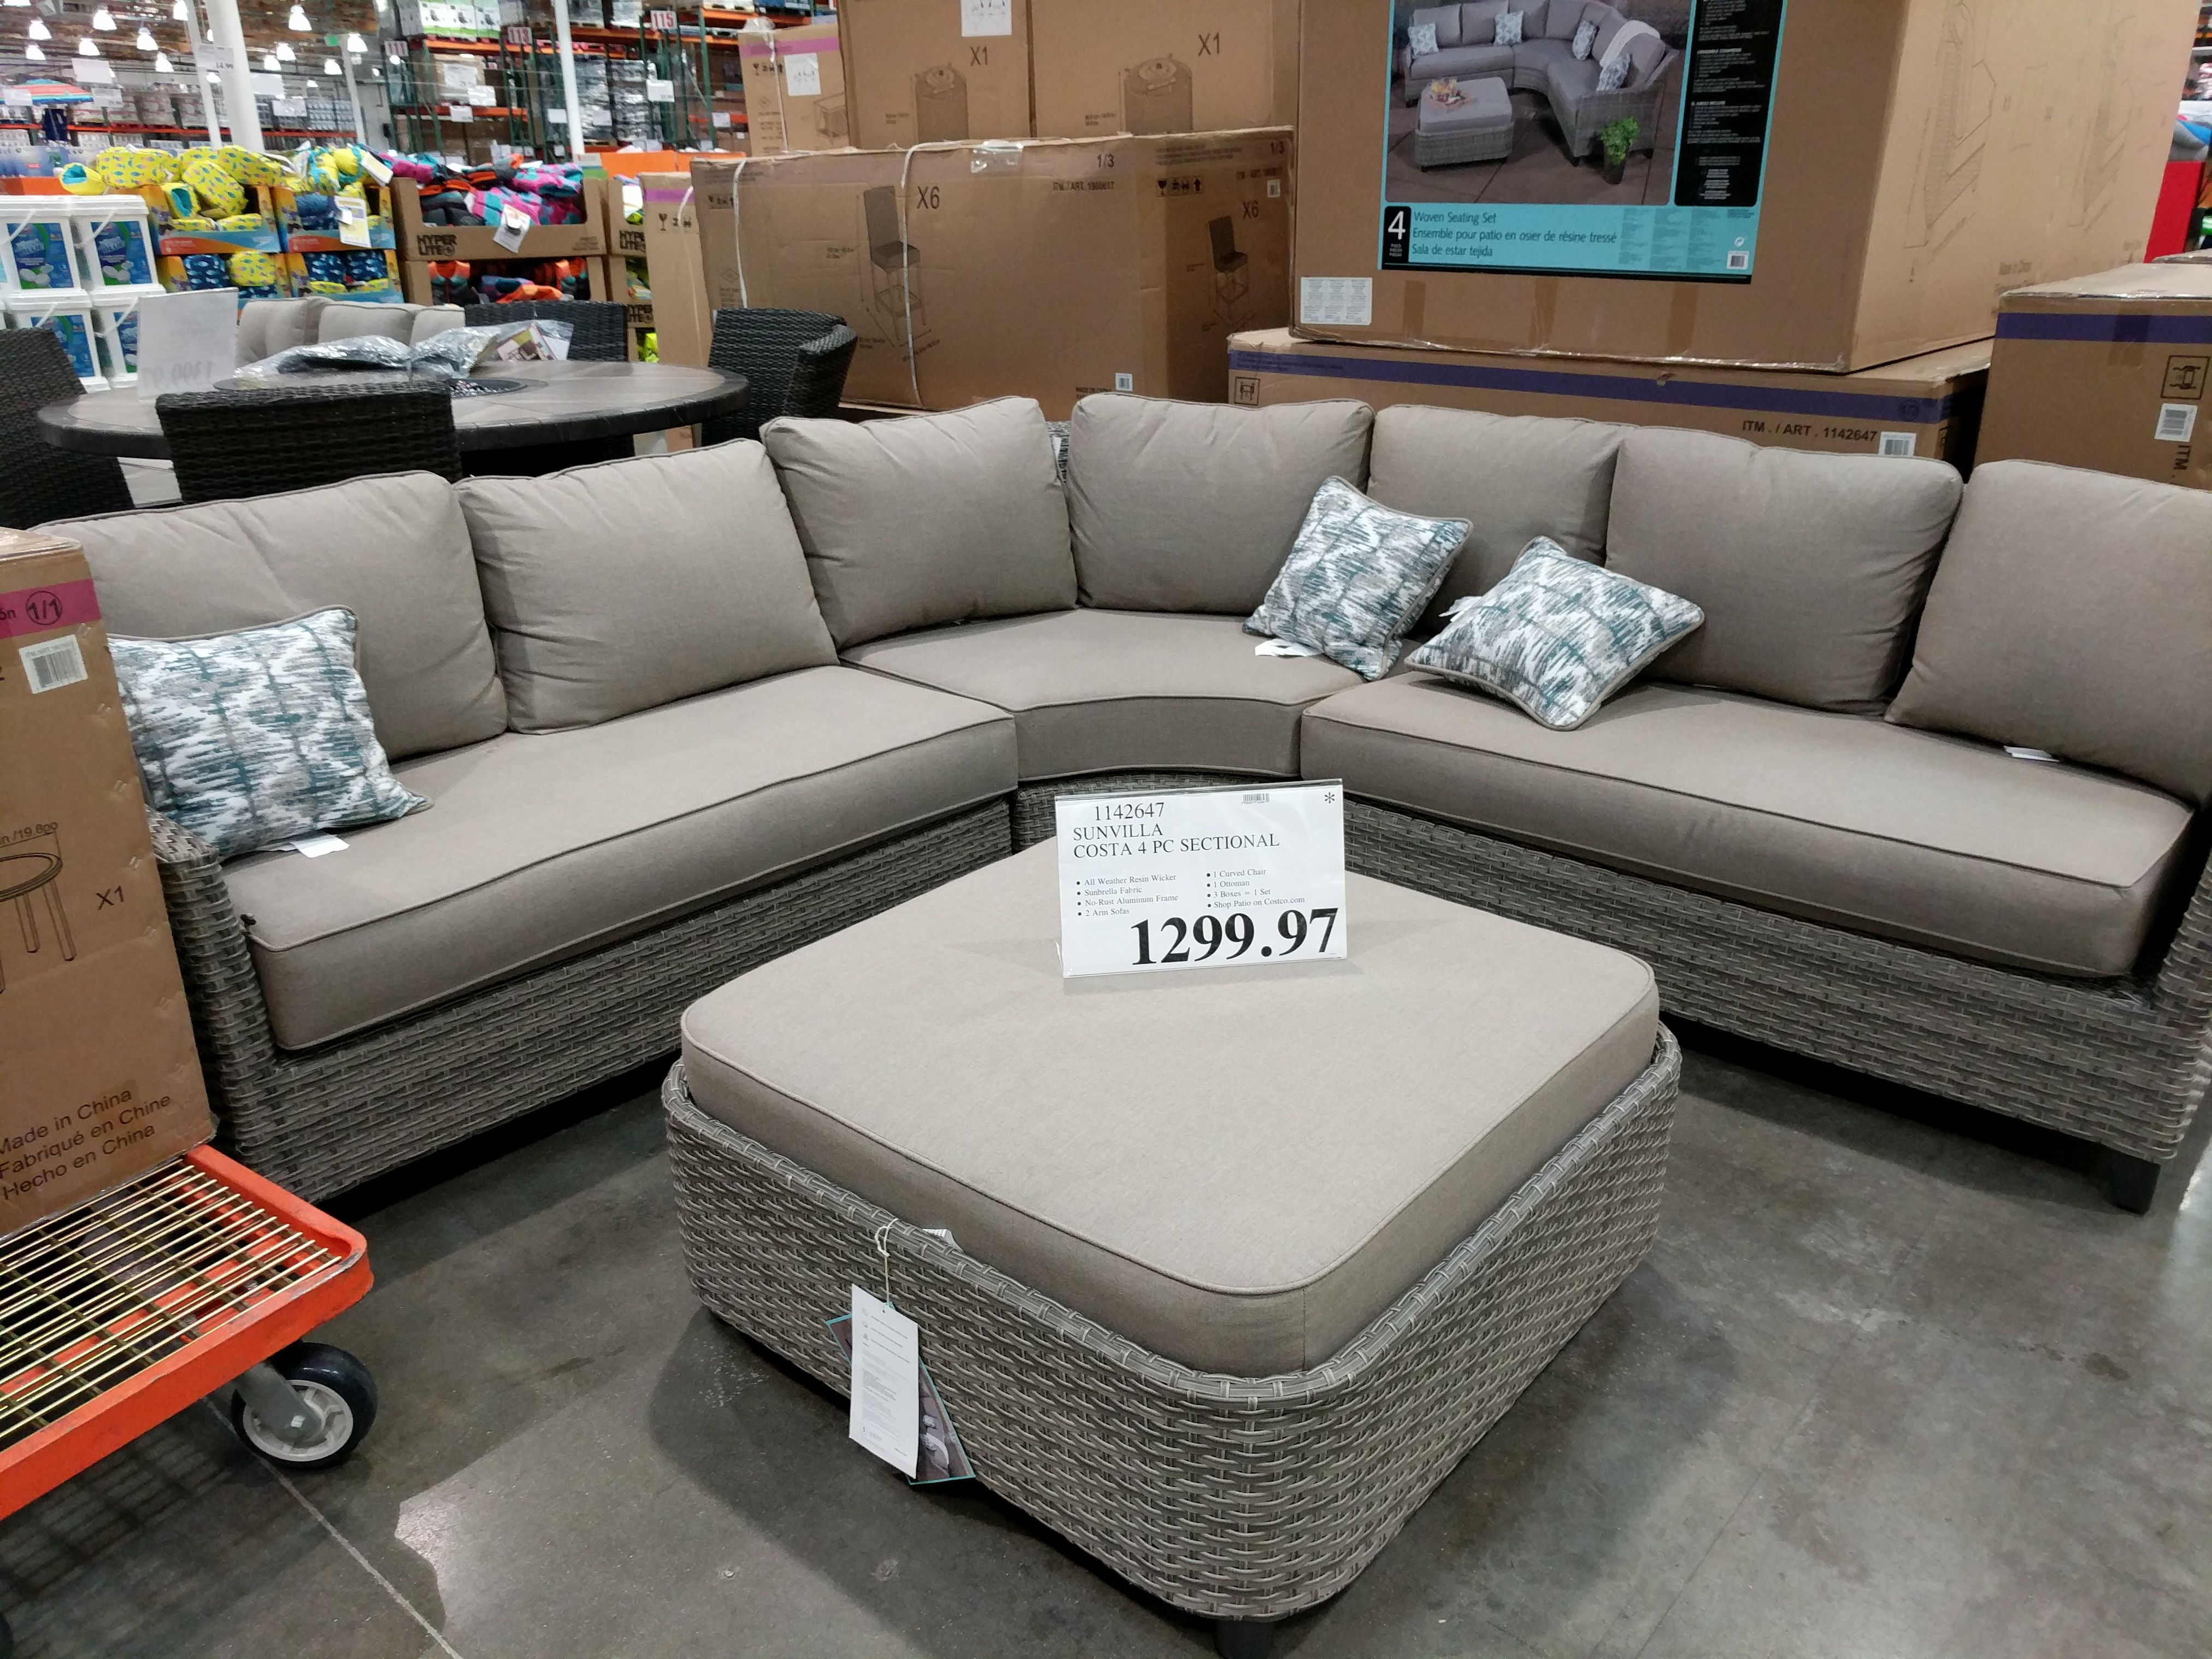 Sunvilla Costa 4 Piece Sectional 1299 97 Costco Clearance